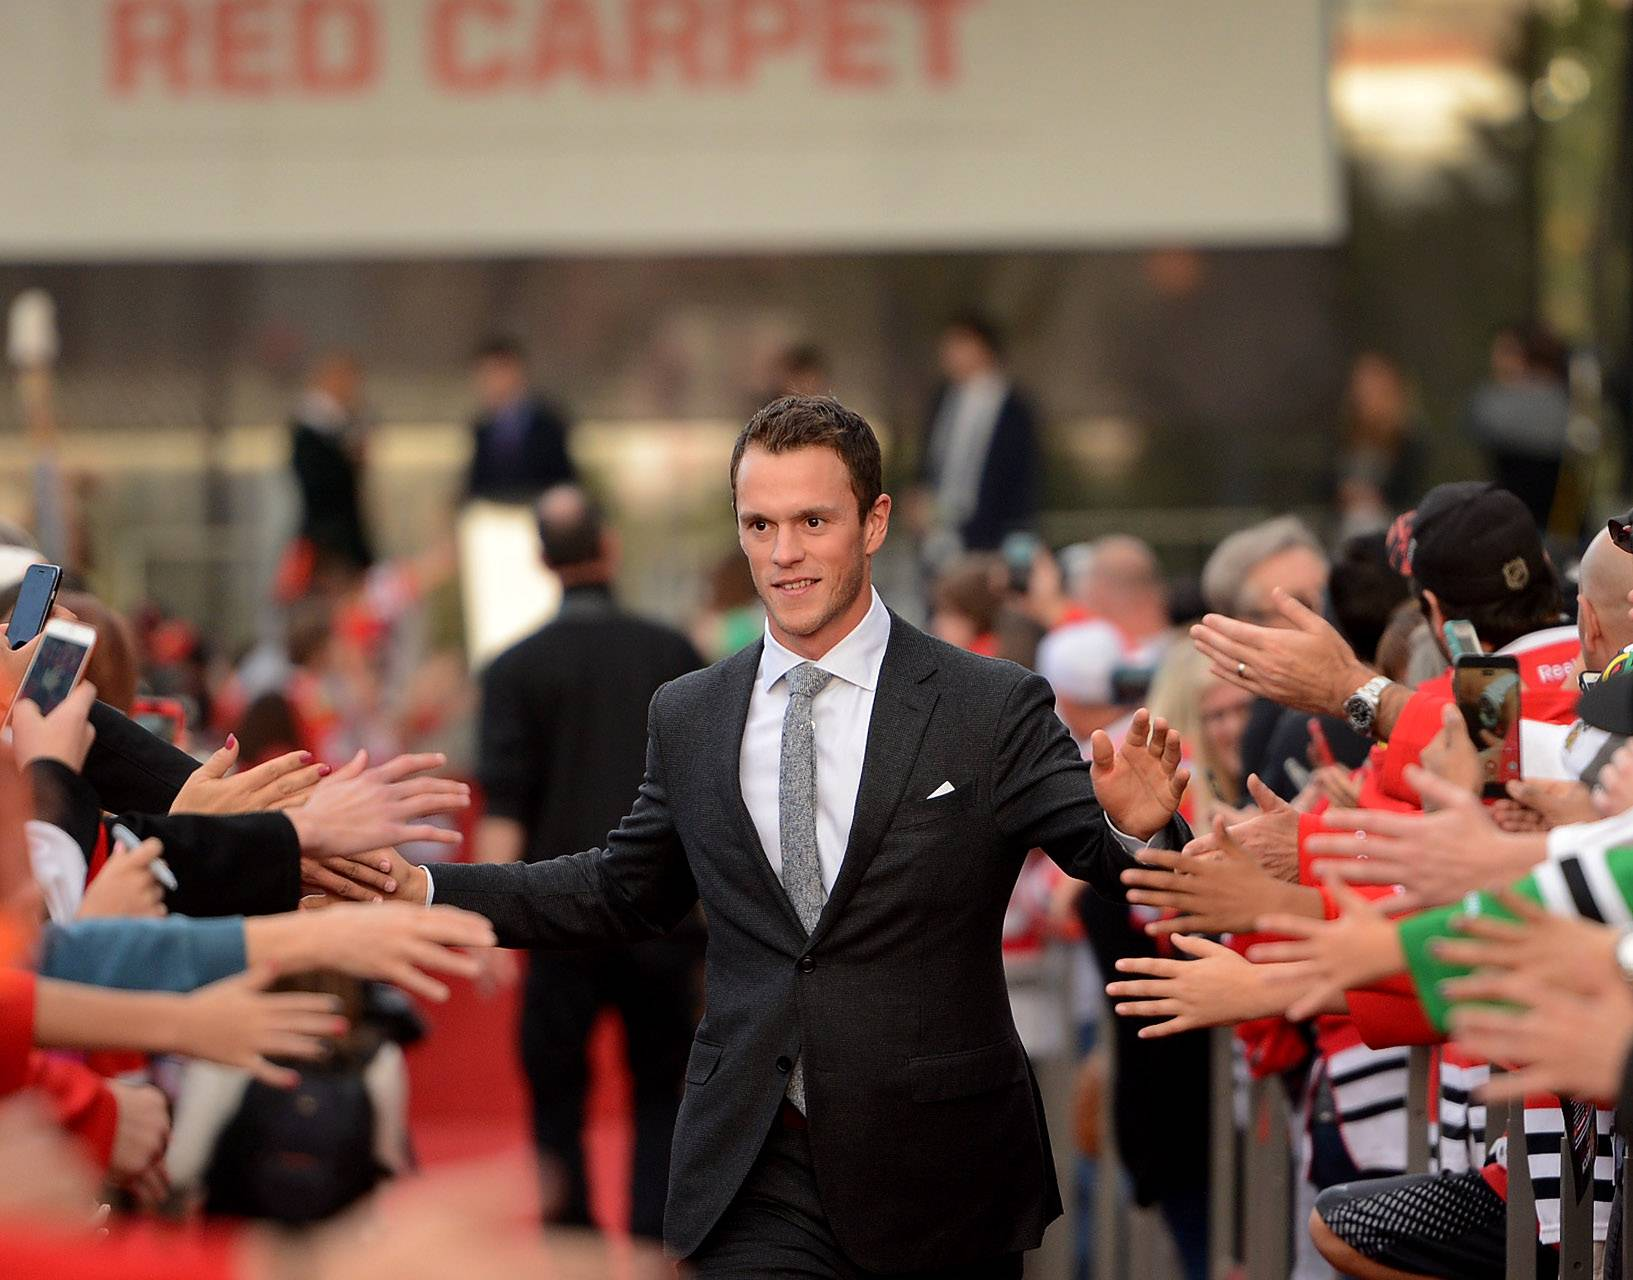 Bob Chwedyk/bchwedyk@dailyherald.comChicago Blackhawks center Jonathan Toews walks the red carpet ceremony before the Blackhawks home opener against the Penguins.